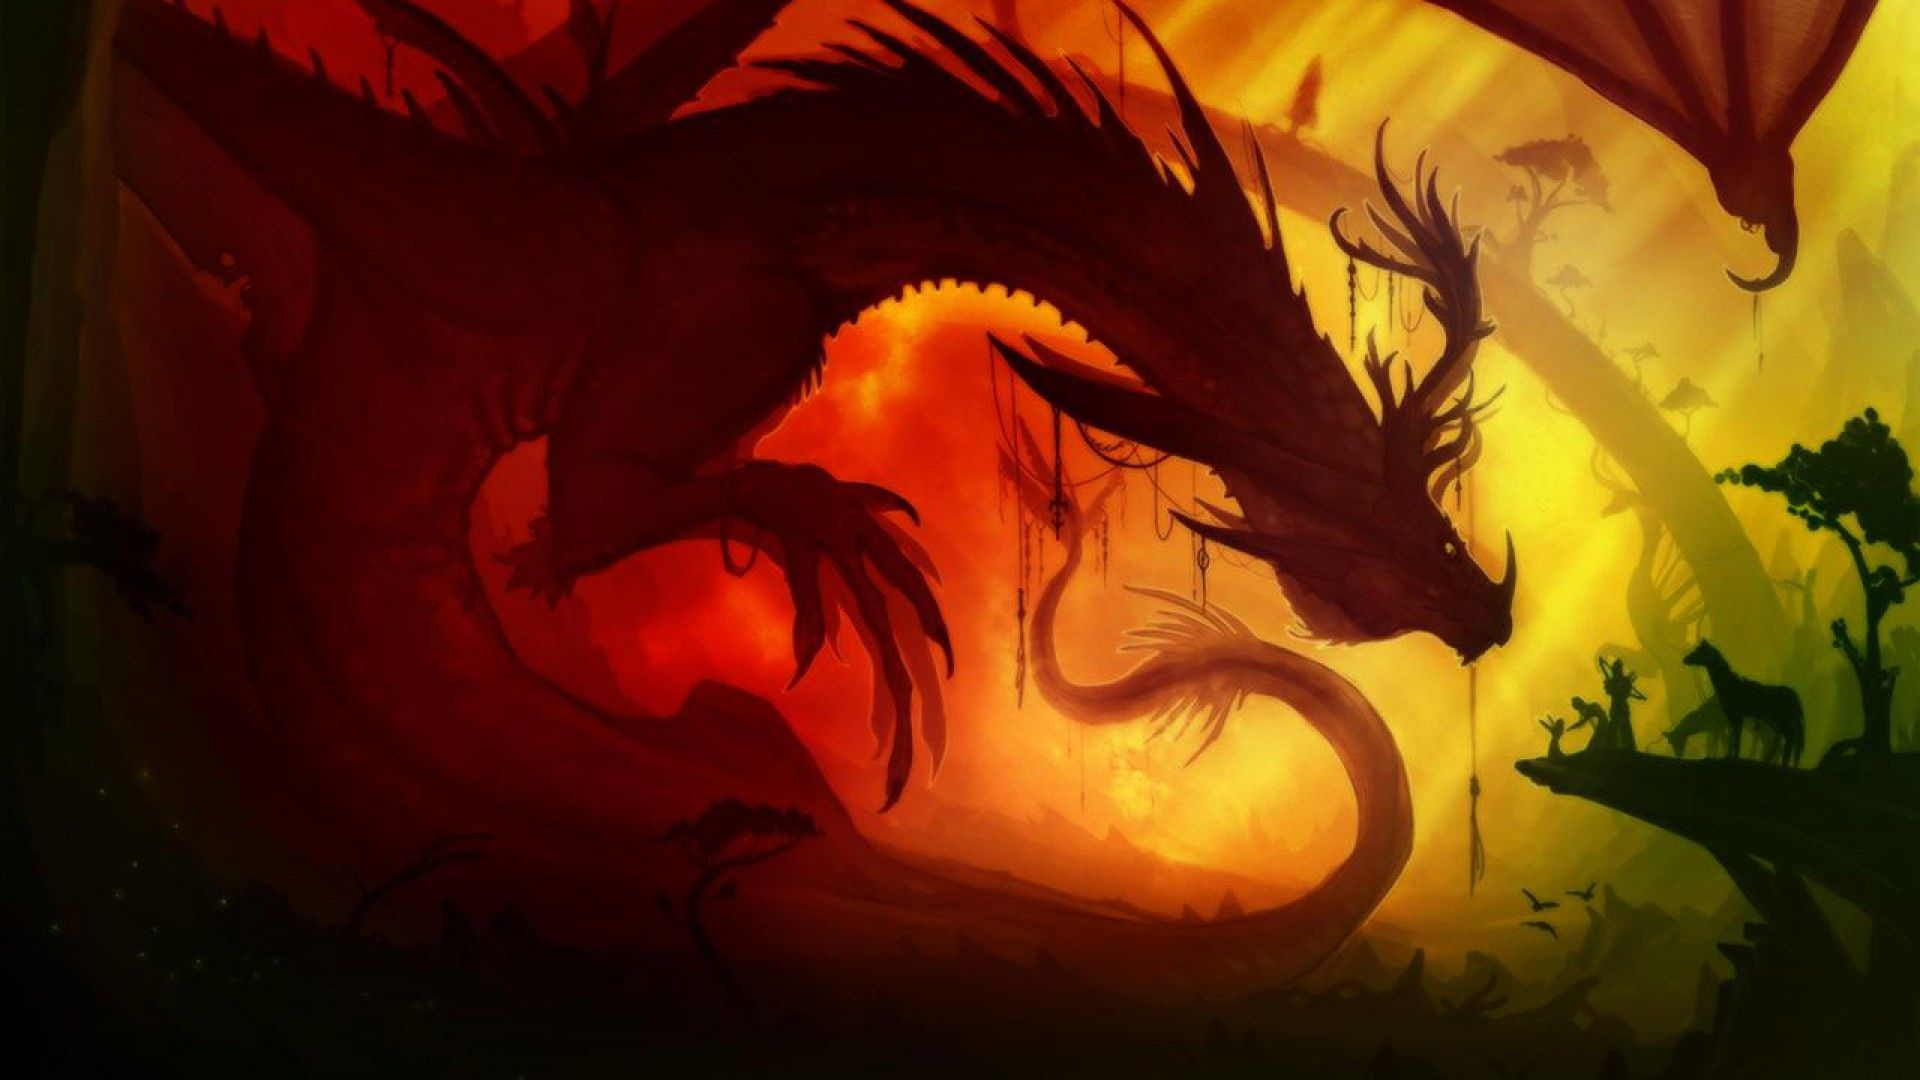 Red Dragon Wallpapers 60 Images